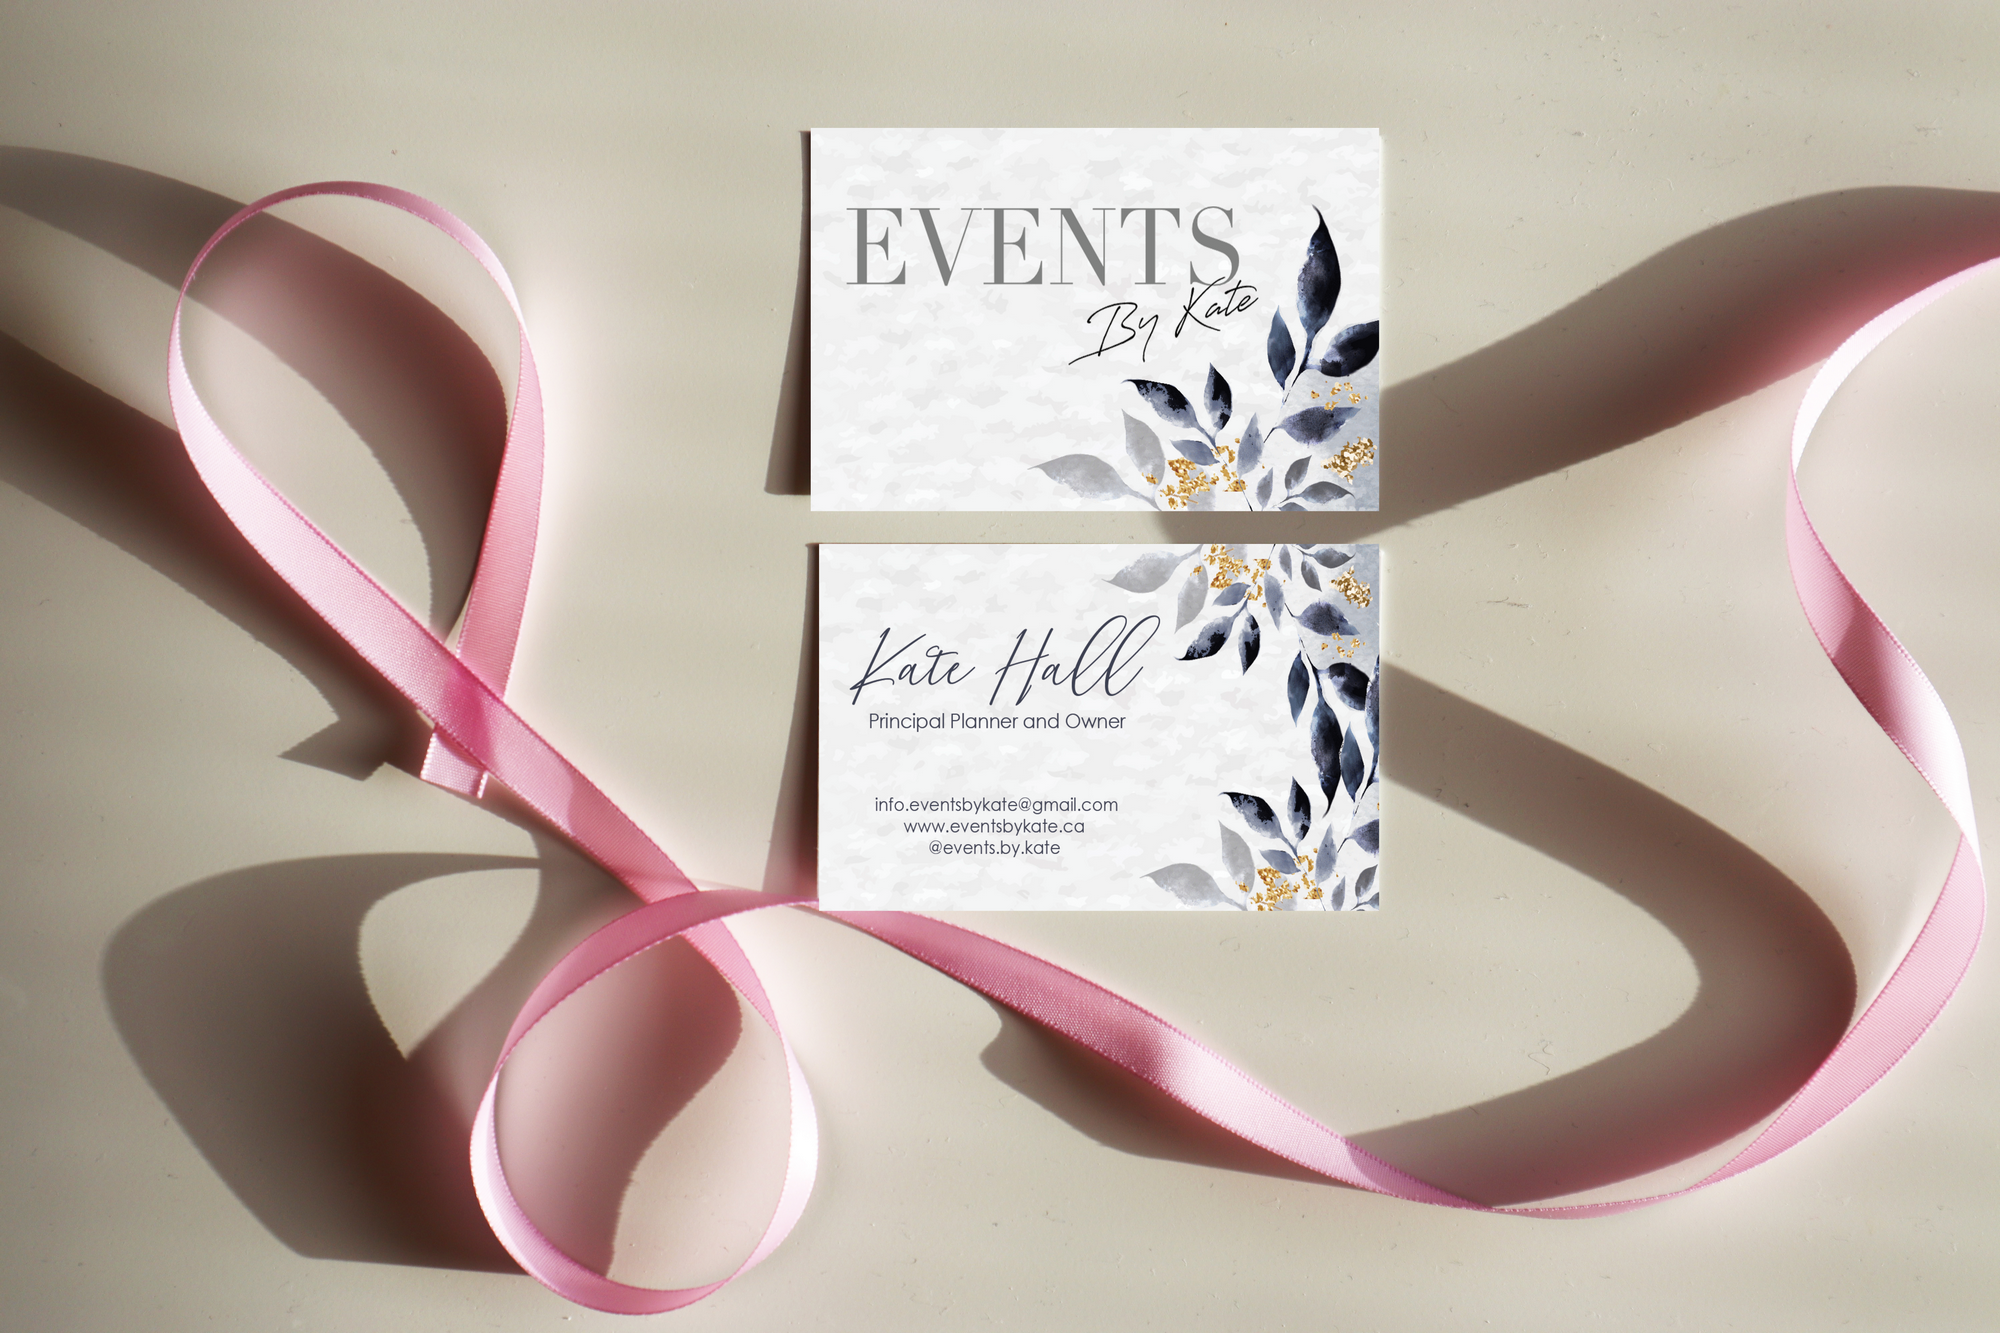 events_by_kate_final_SM